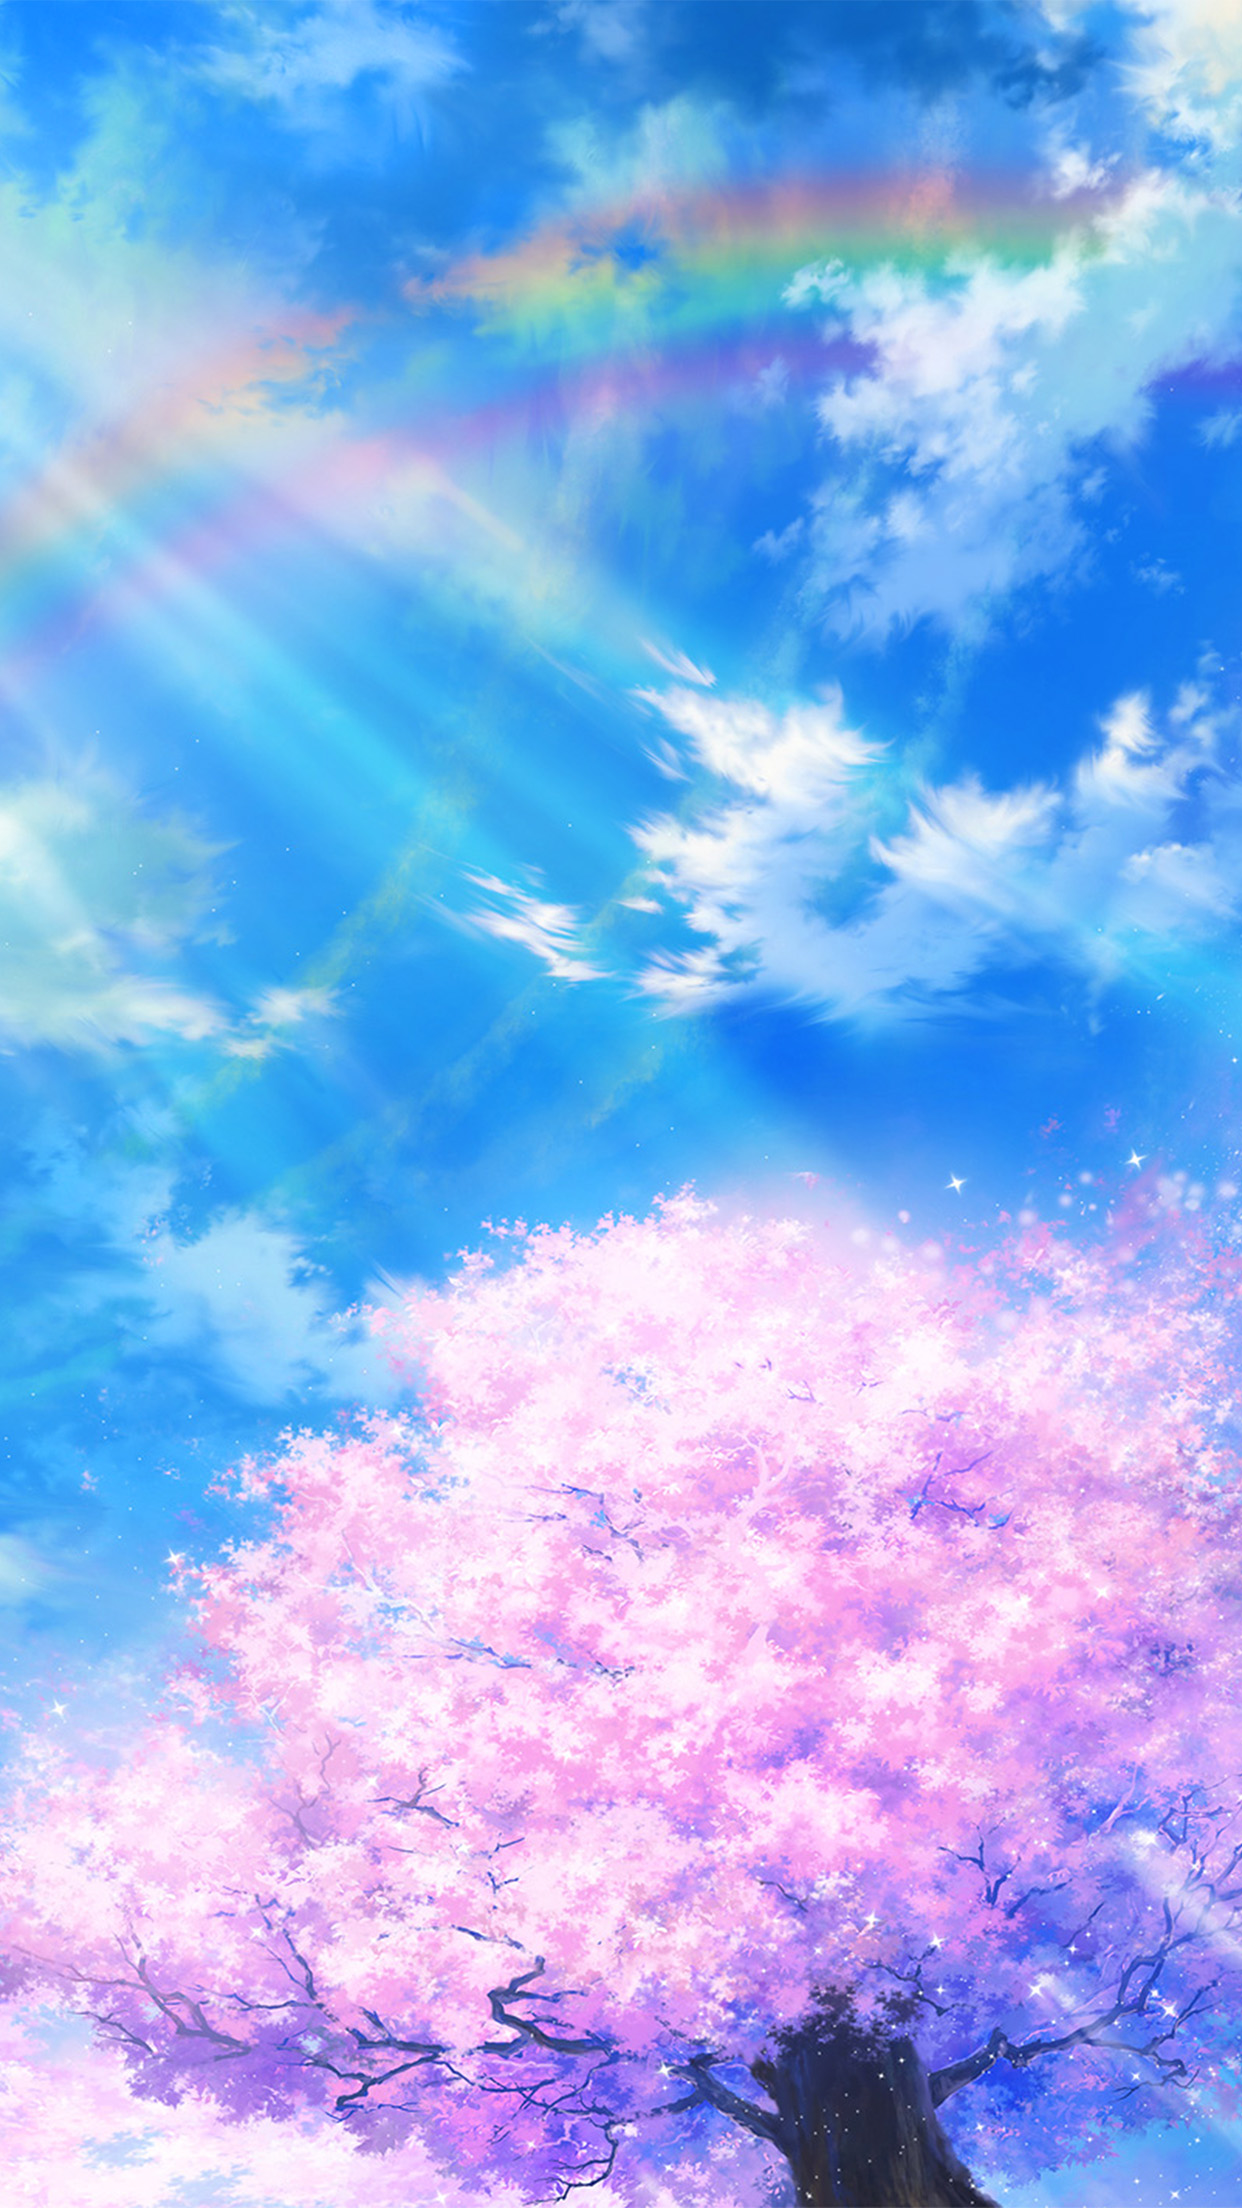 Sky Anime I Love Papers Bd75 Anime Sky Cloud Spring Art Illustration